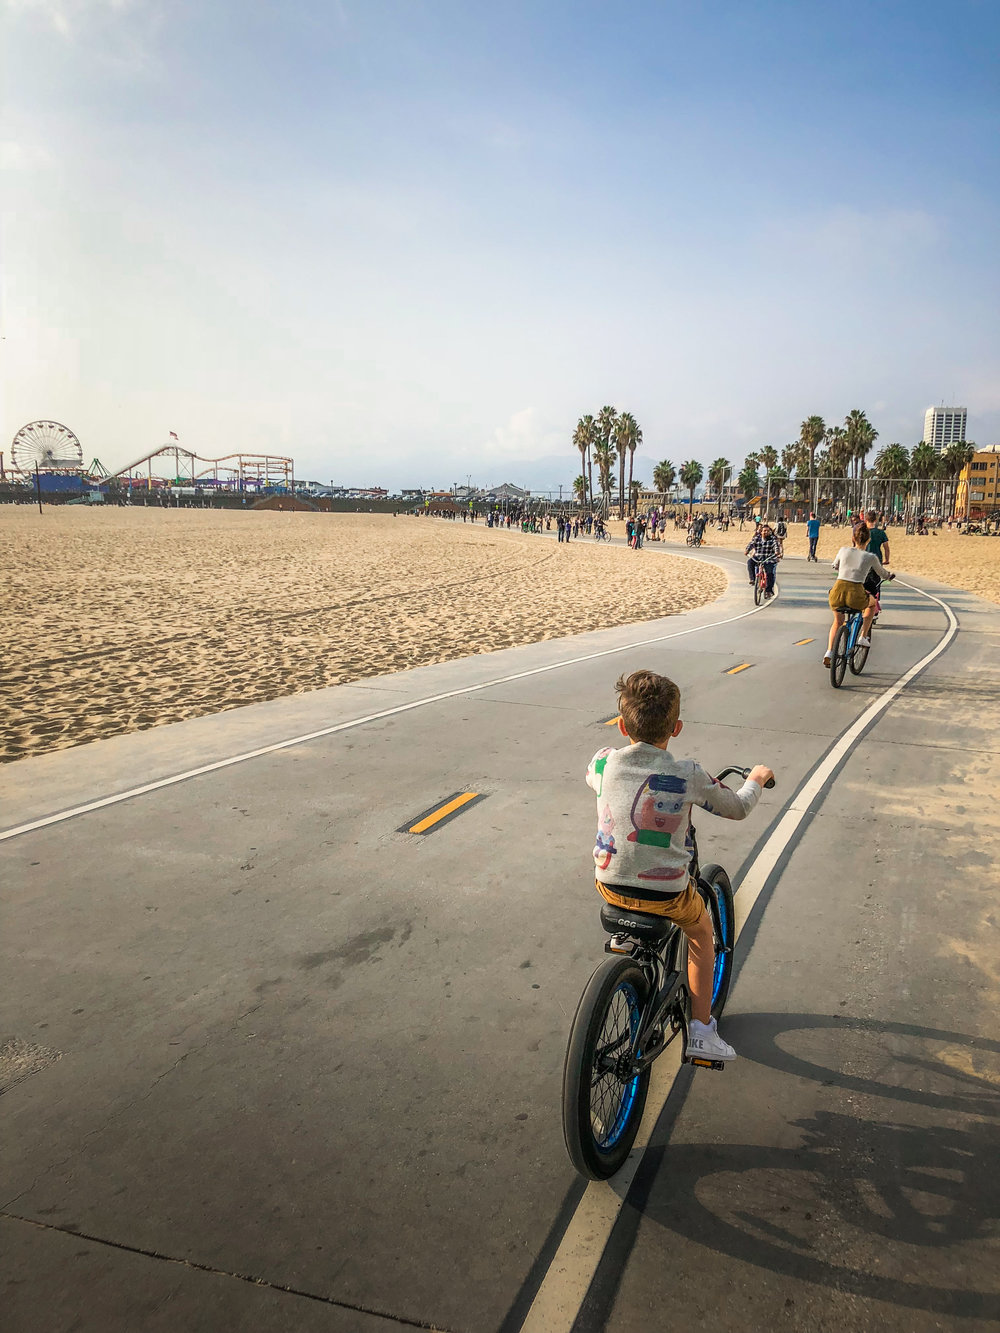 Santa monica Bike ride Venice beach